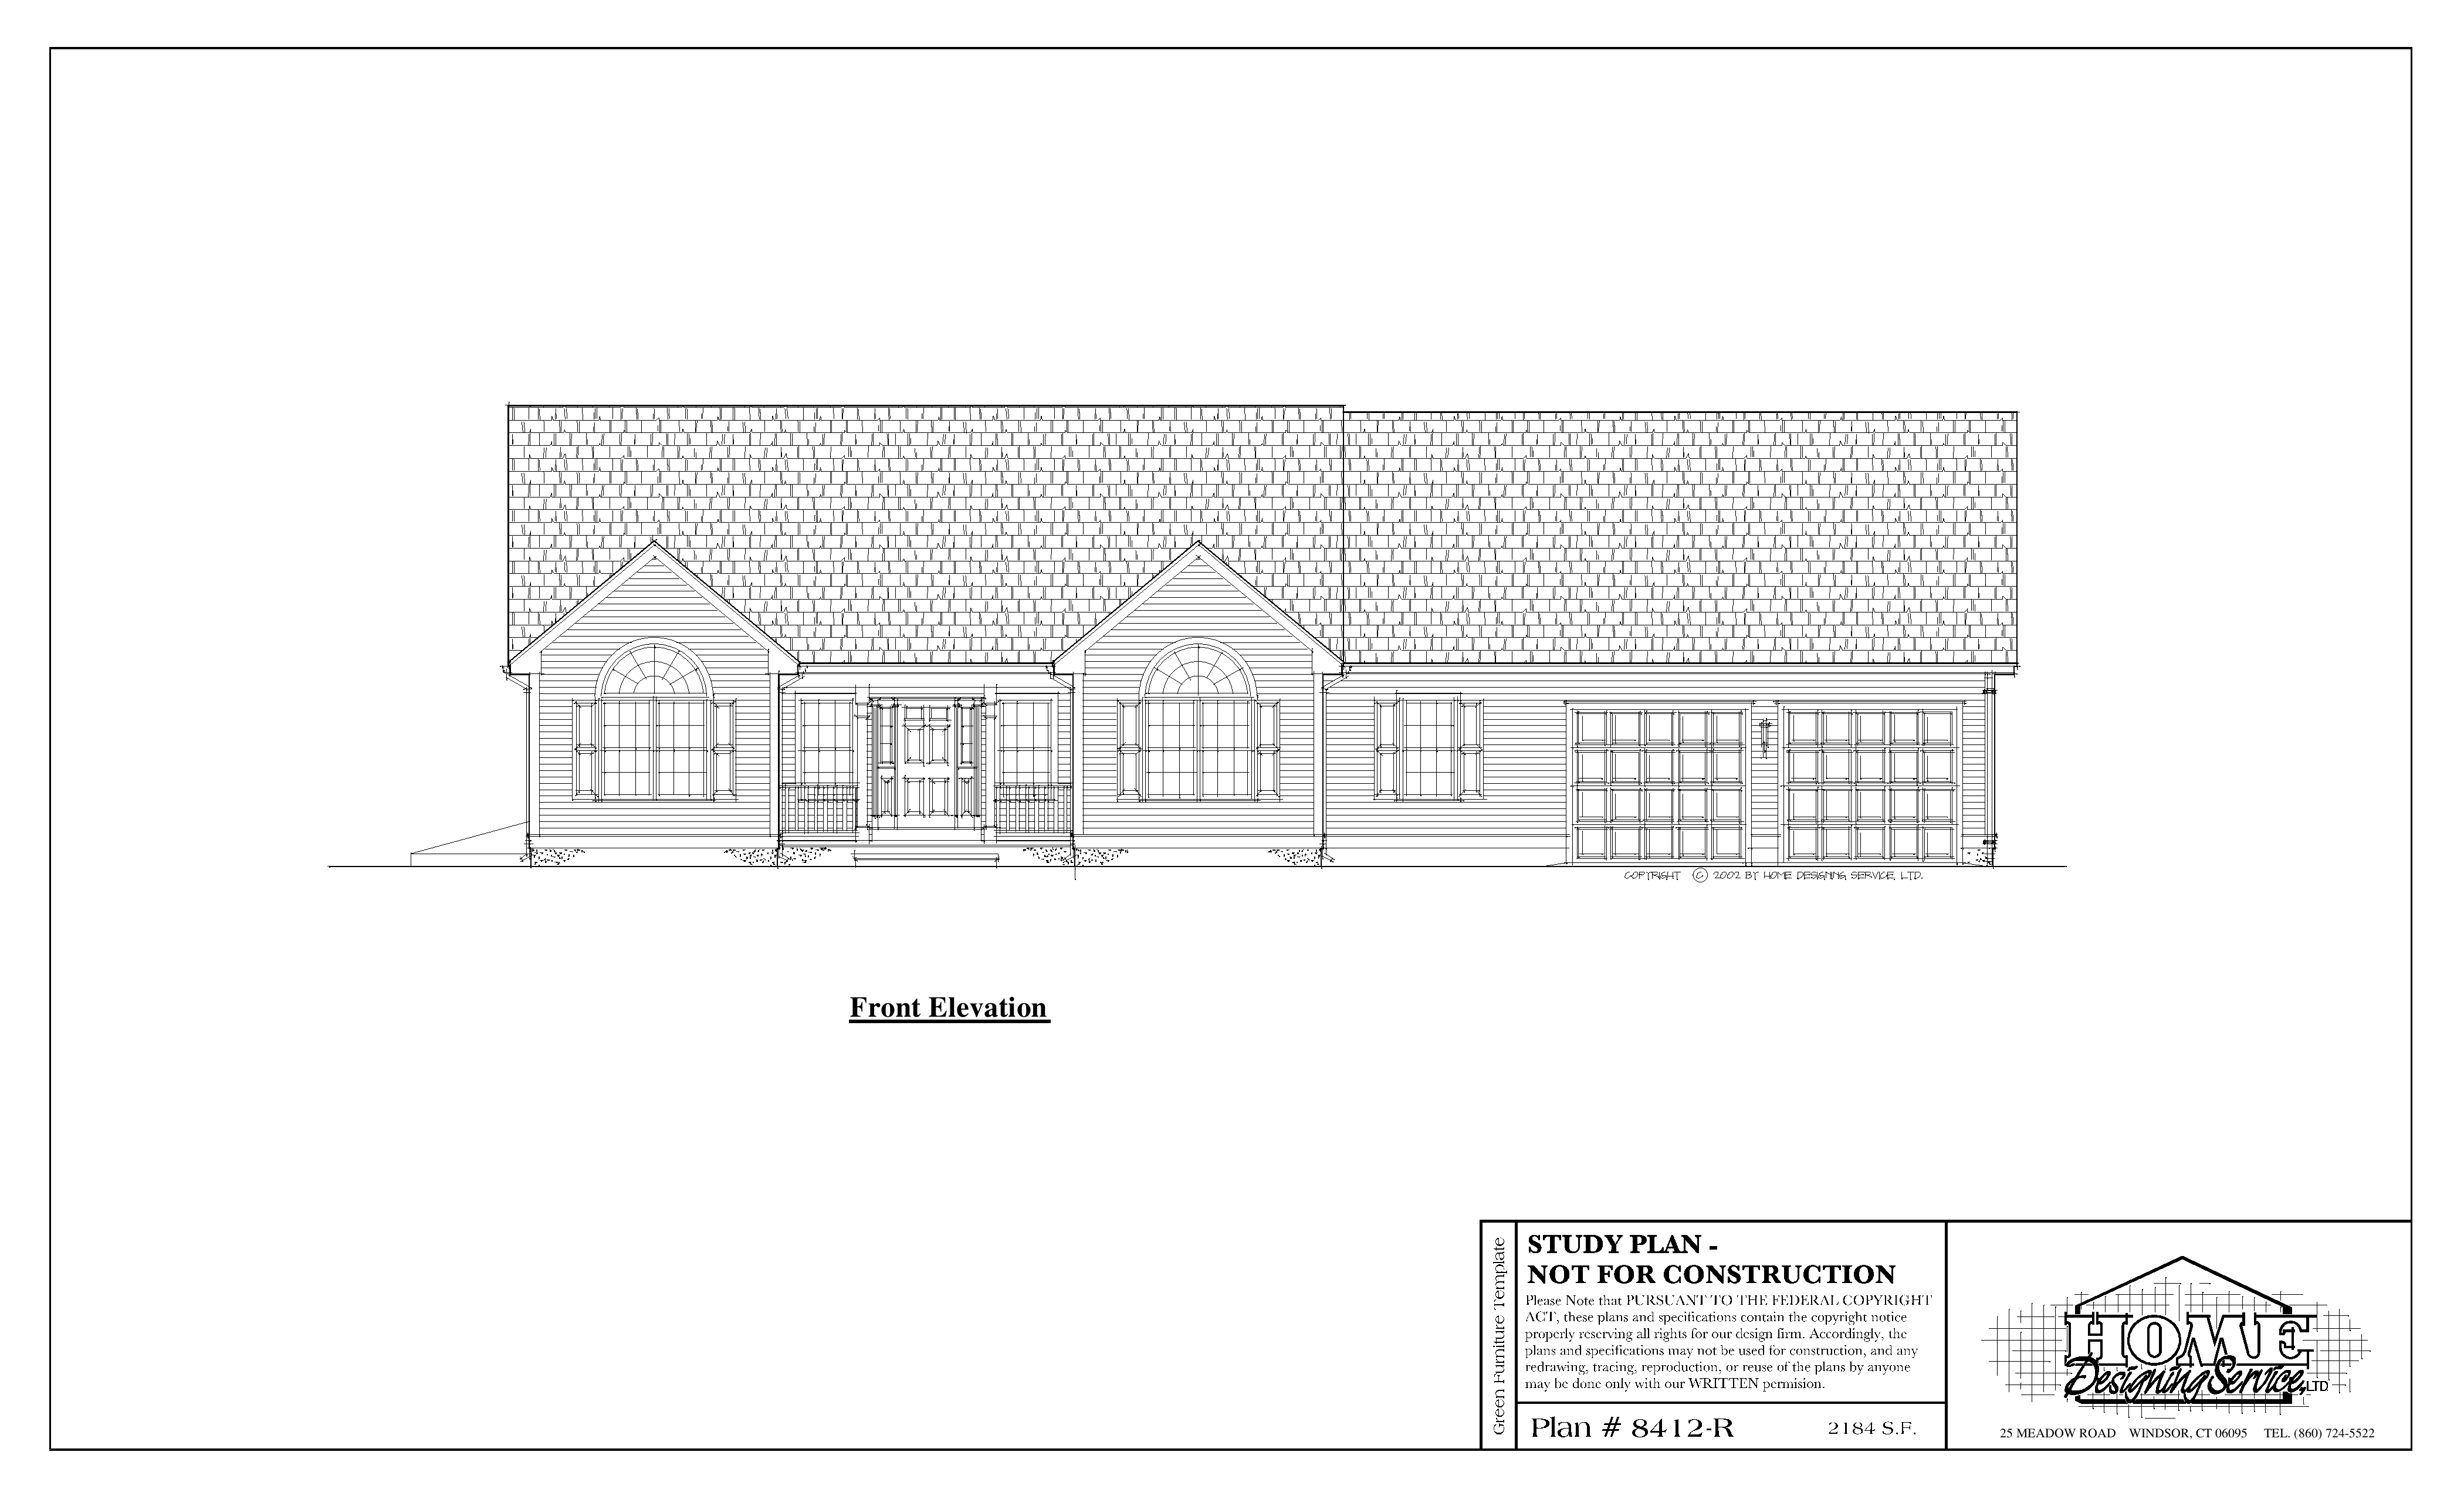 Ranch House Plan 8412-R - Home Designing Service Ltd. on